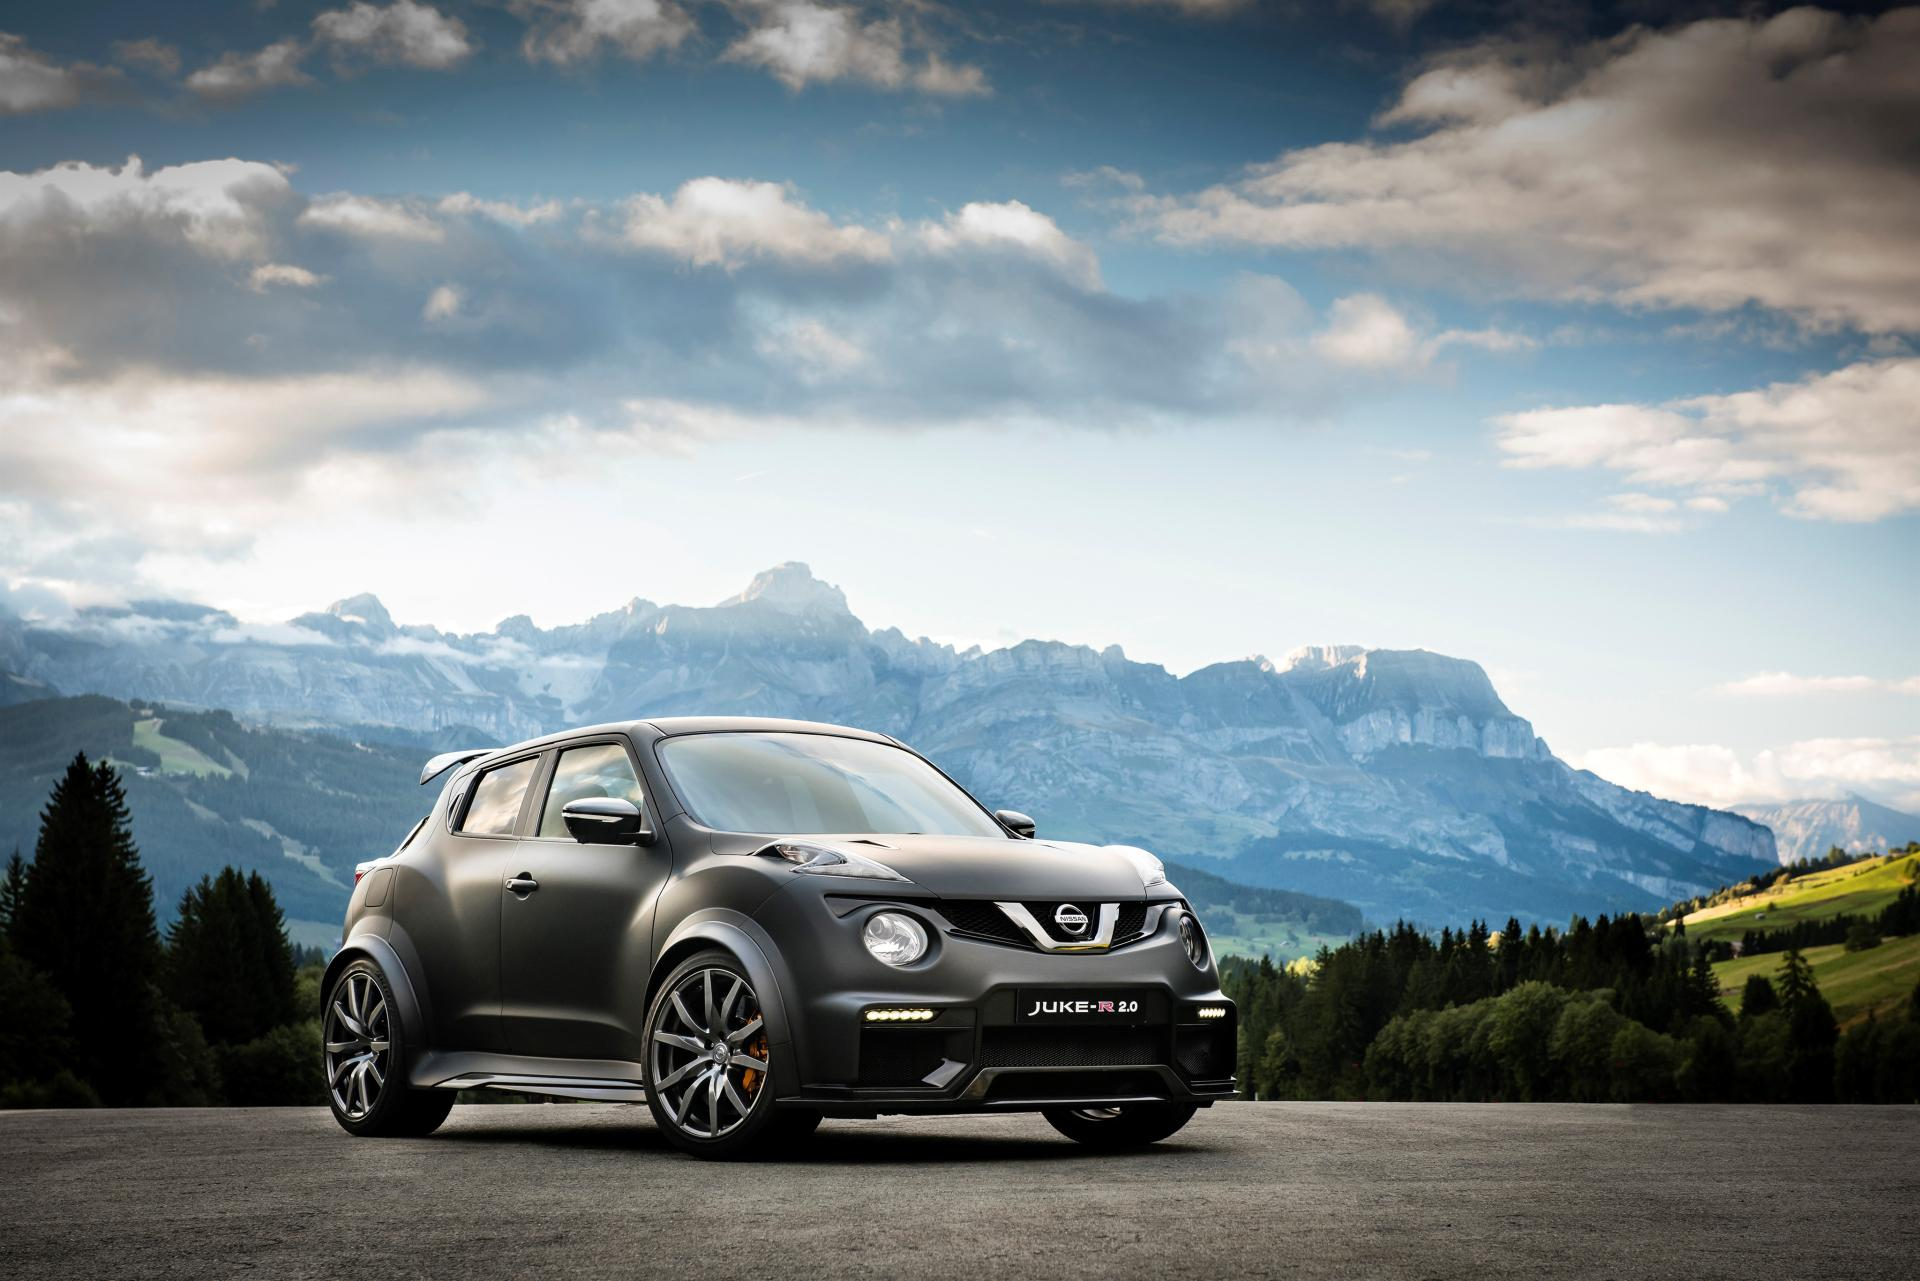 nissan juke wallpaper hd download. Black Bedroom Furniture Sets. Home Design Ideas